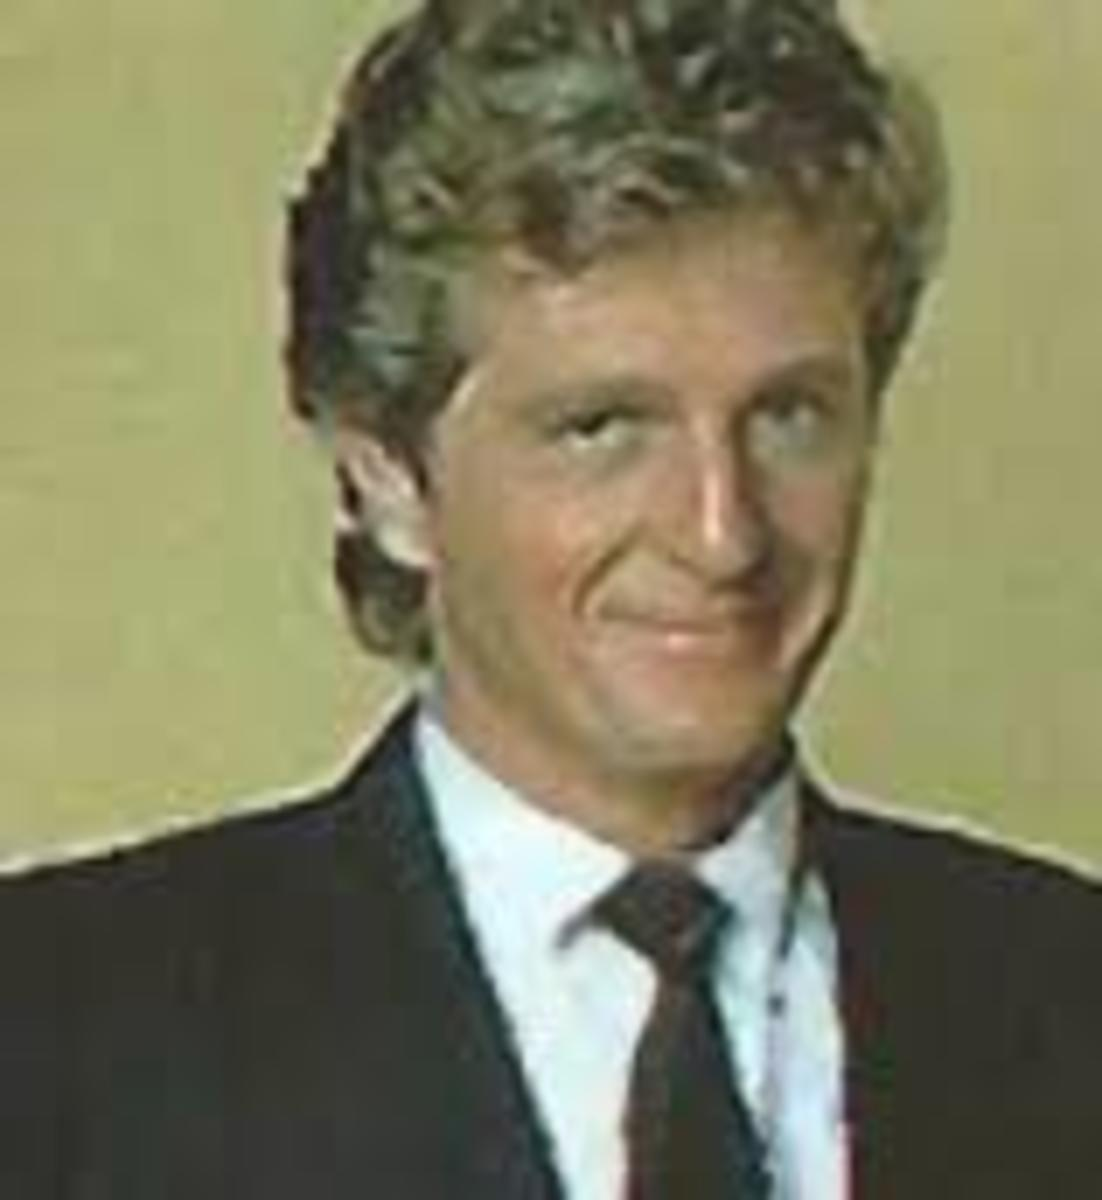 Marjoe Gortner started his career as an evangelical preacher and ordained minister at the age of four